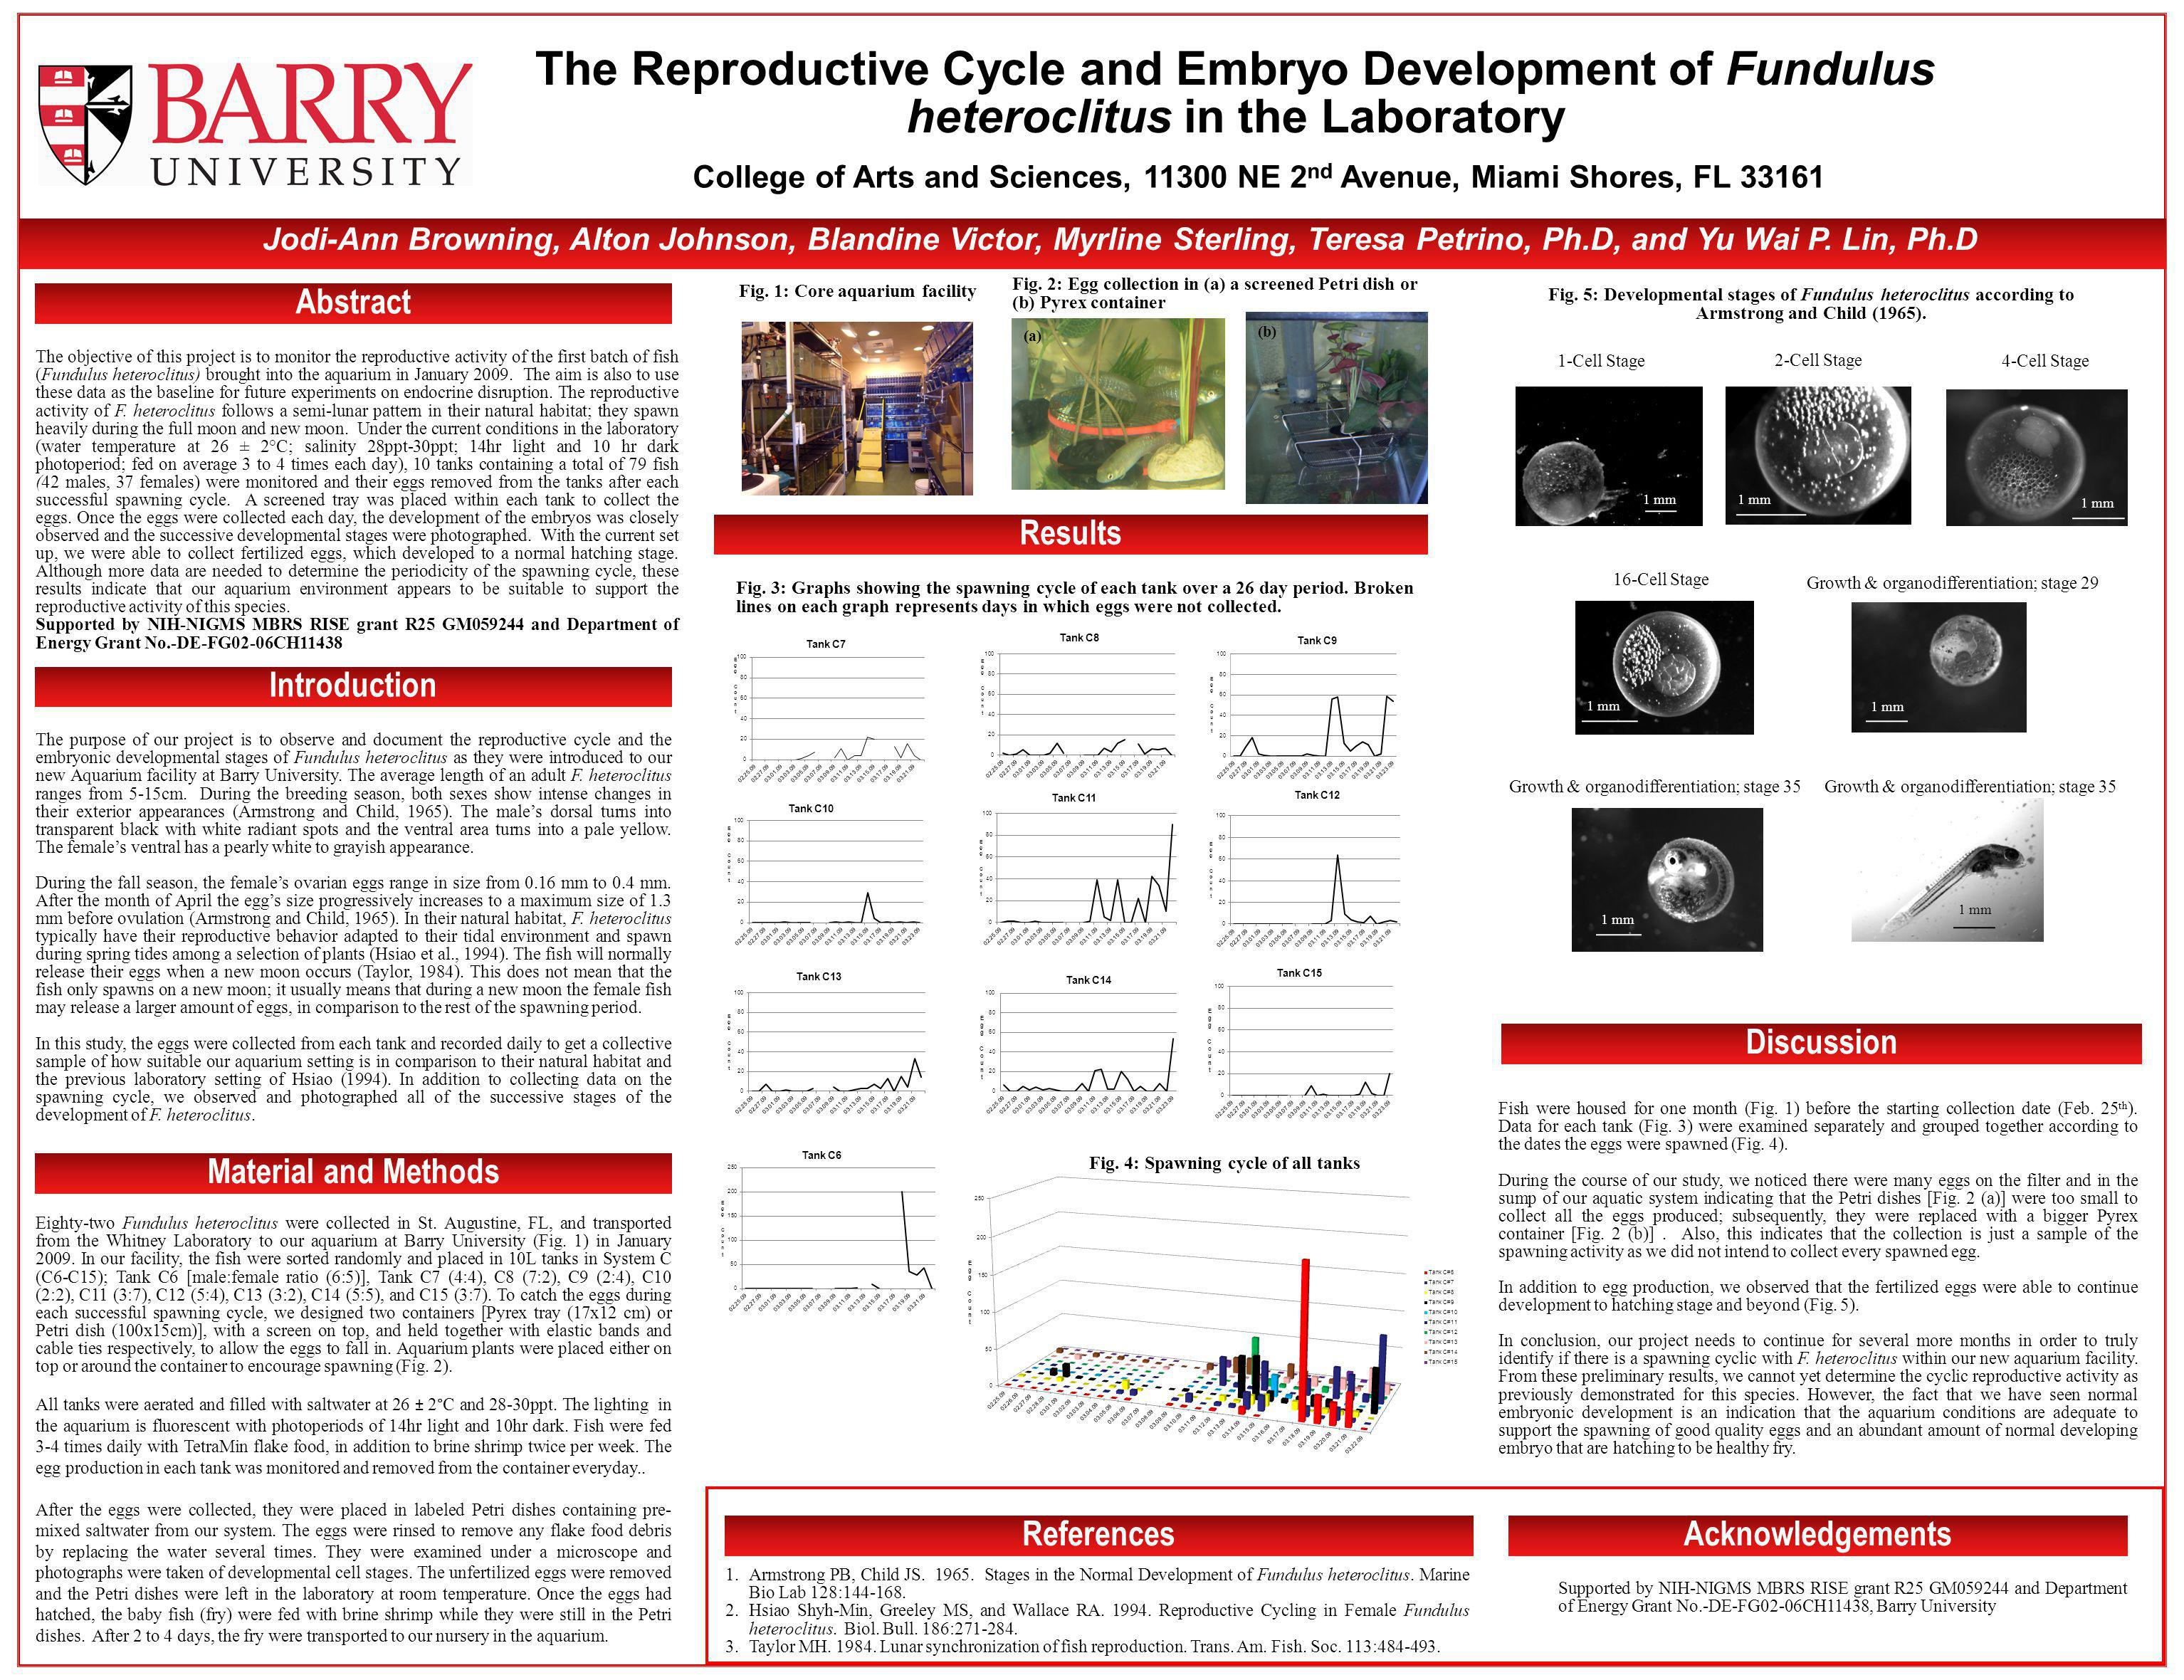 The Reproductive Cycle and Embryo Development of Fundulus heteroclitus in the Laboratory Abstract Introduction Material and Methods Results Discussion ReferencesAcknowledgements Jodi-Ann Browning, Alton Johnson, Blandine Victor, Myrline Sterling, Teresa Petrino, Ph.D, and Yu Wai P.